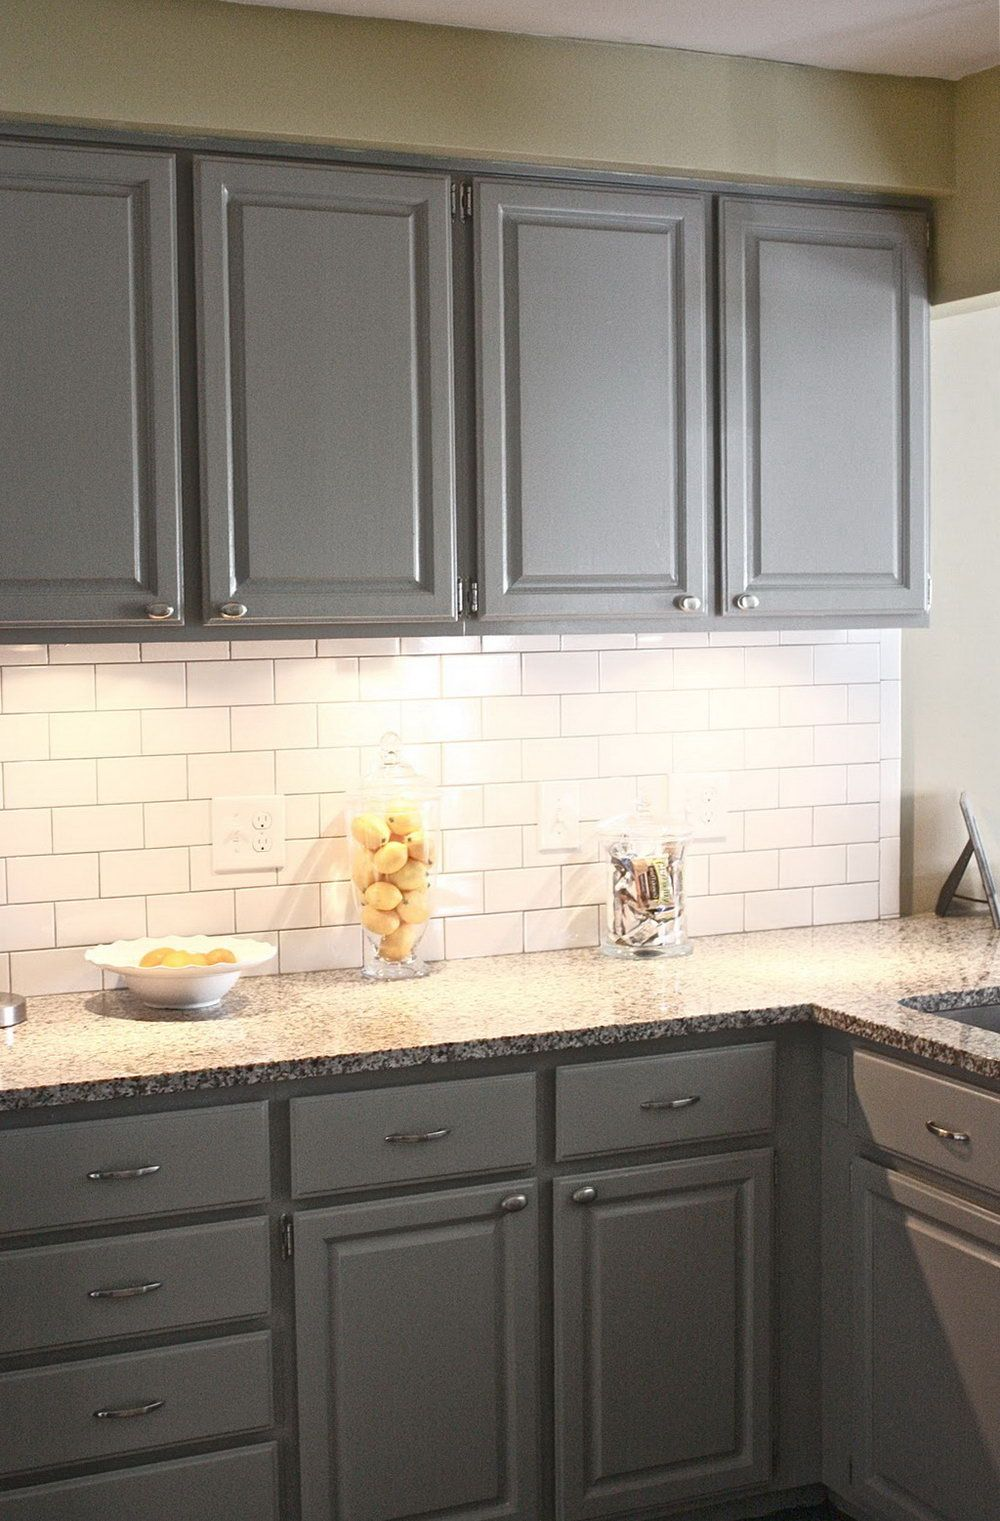 Cool Kitchen Backsplash Subway Tile Subway Tile Backsplash Kitchen Gray Subway Tile Backsplash Kitchen Tiles